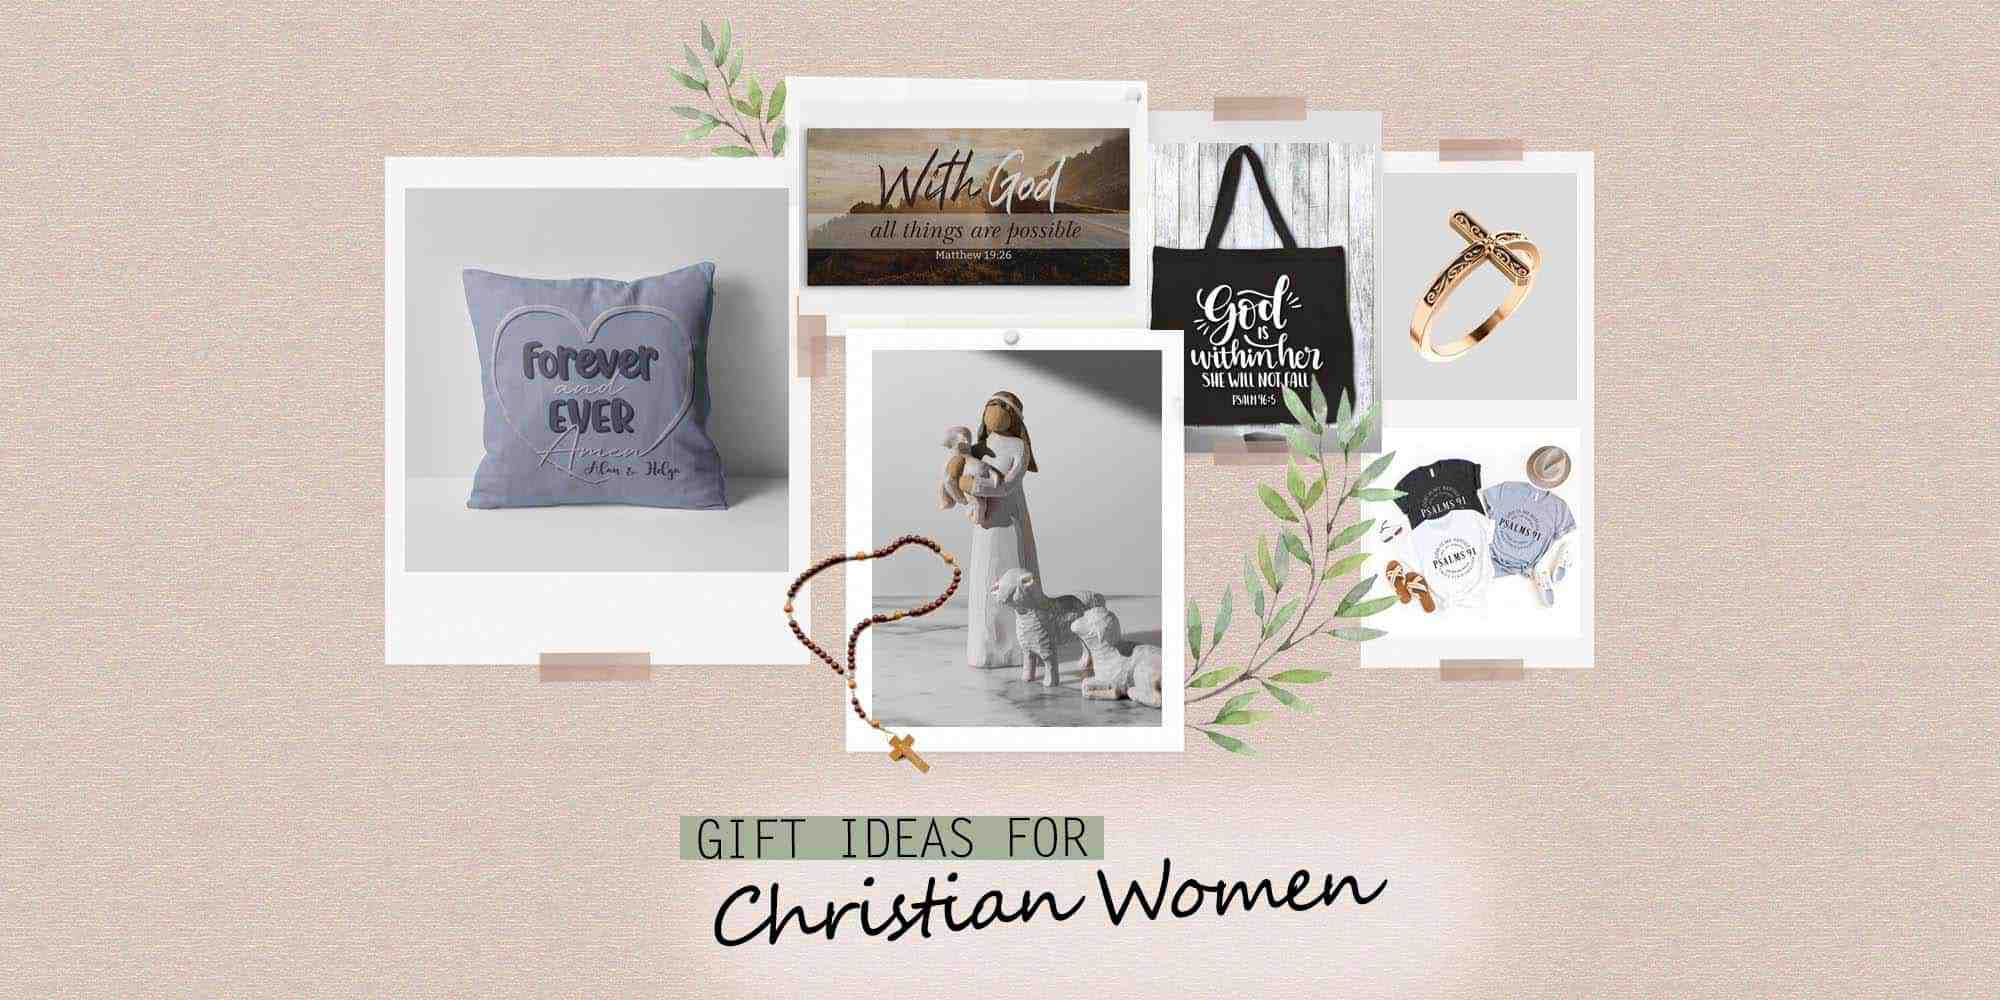 35+ Best Christian Gifts for Women to Inspire Her Faith (2021)